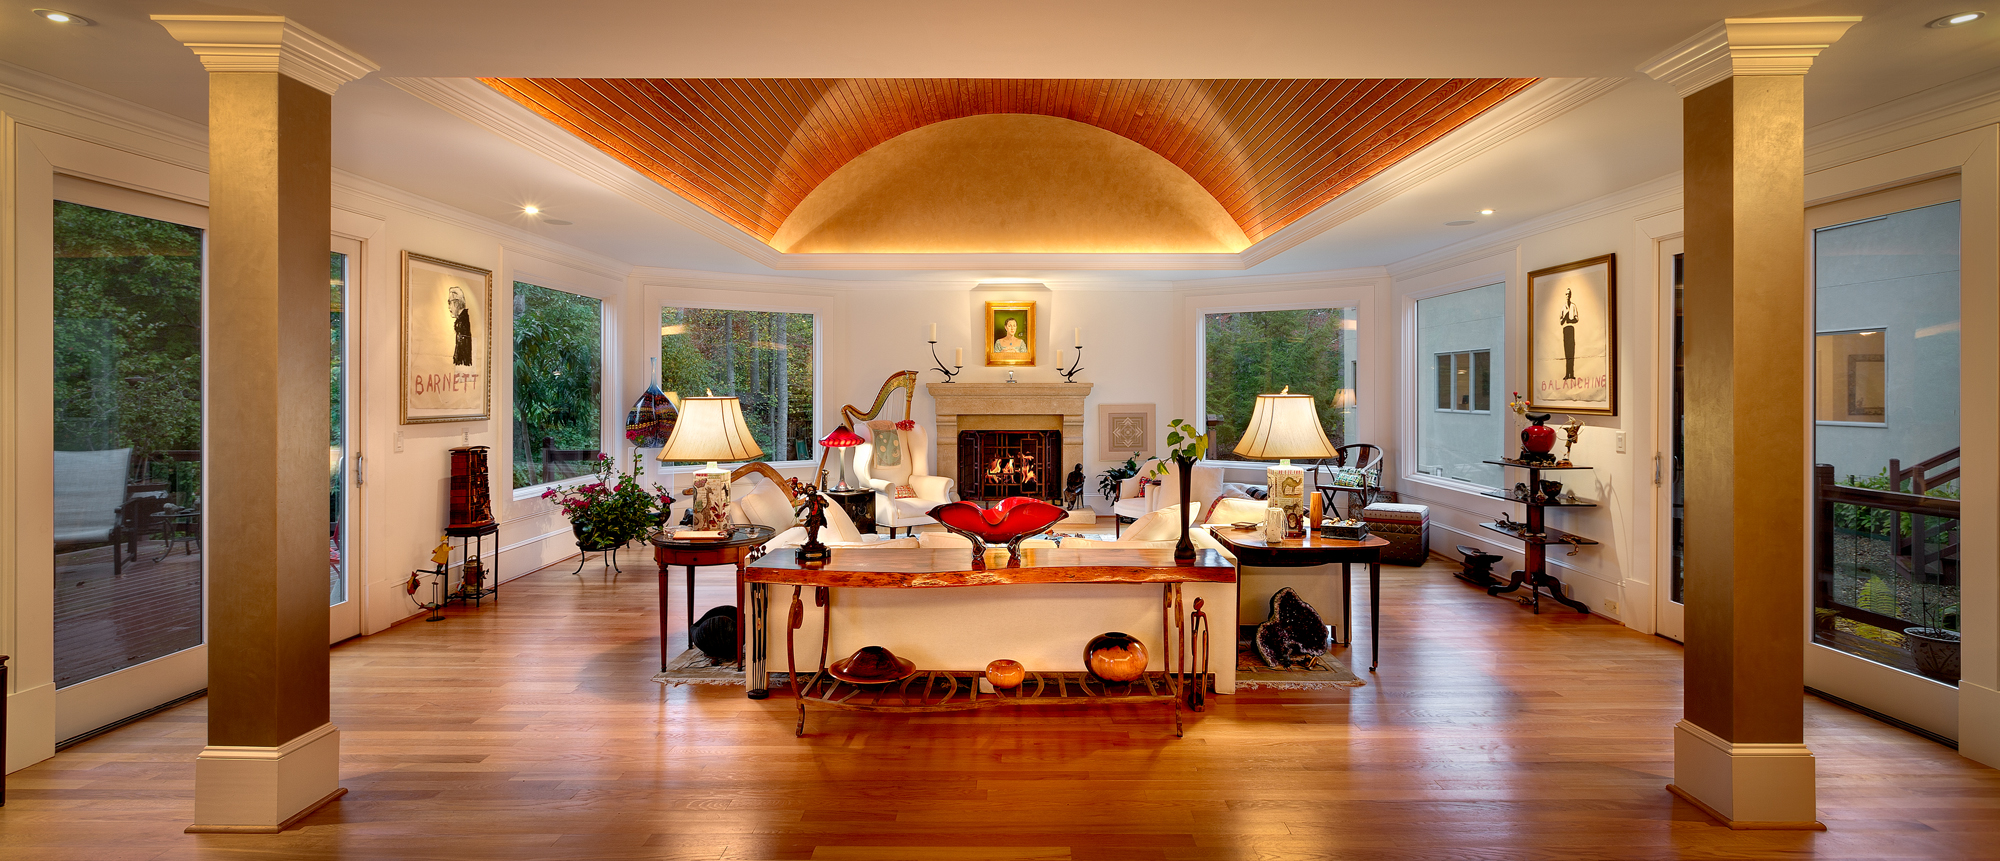 Beautiful Ceiling in Formal Living Area